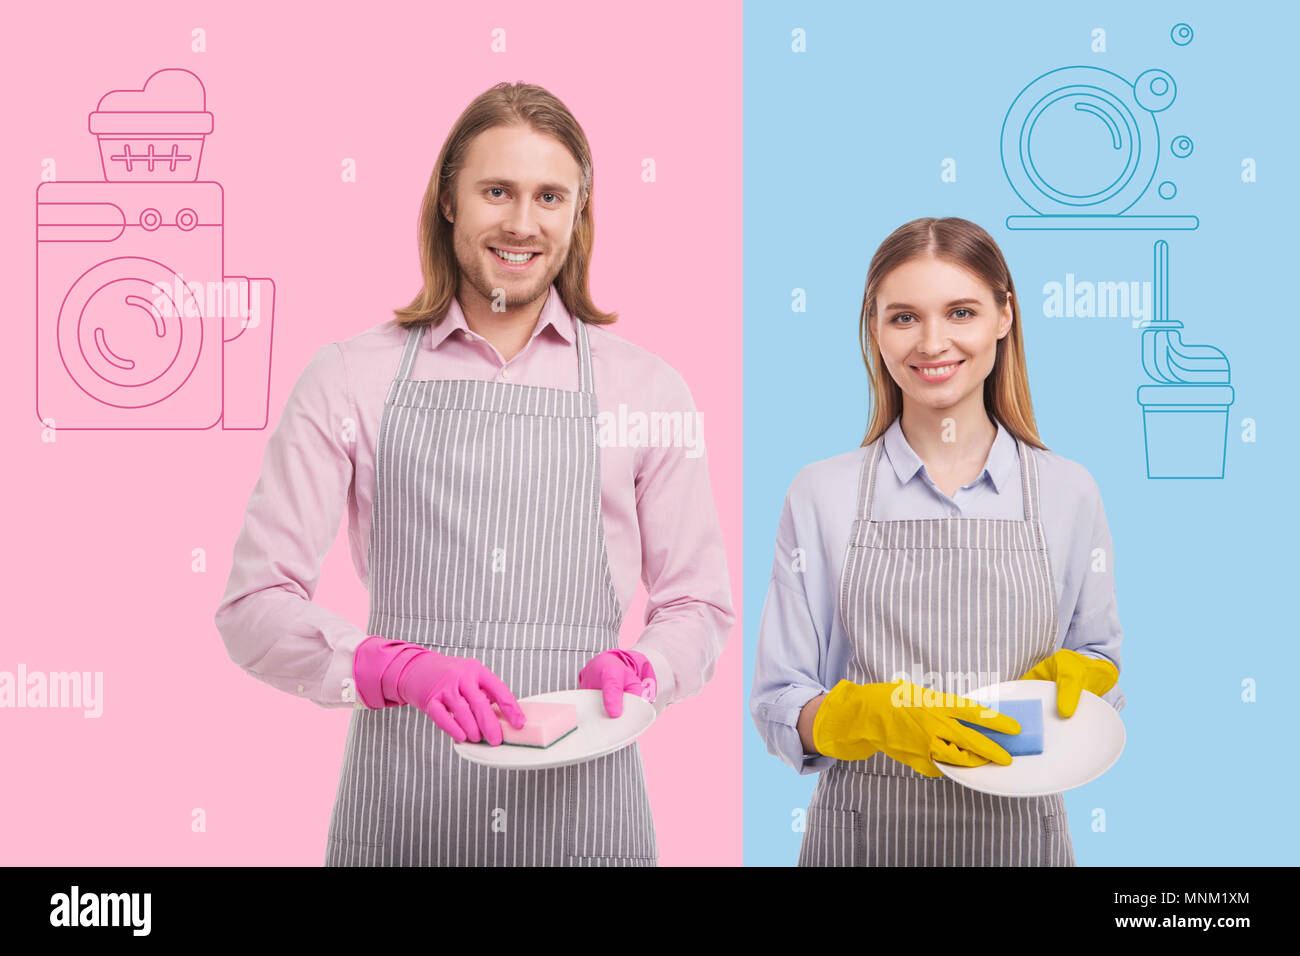 Emotional man smiling while helping his sister with housework - Stock Image